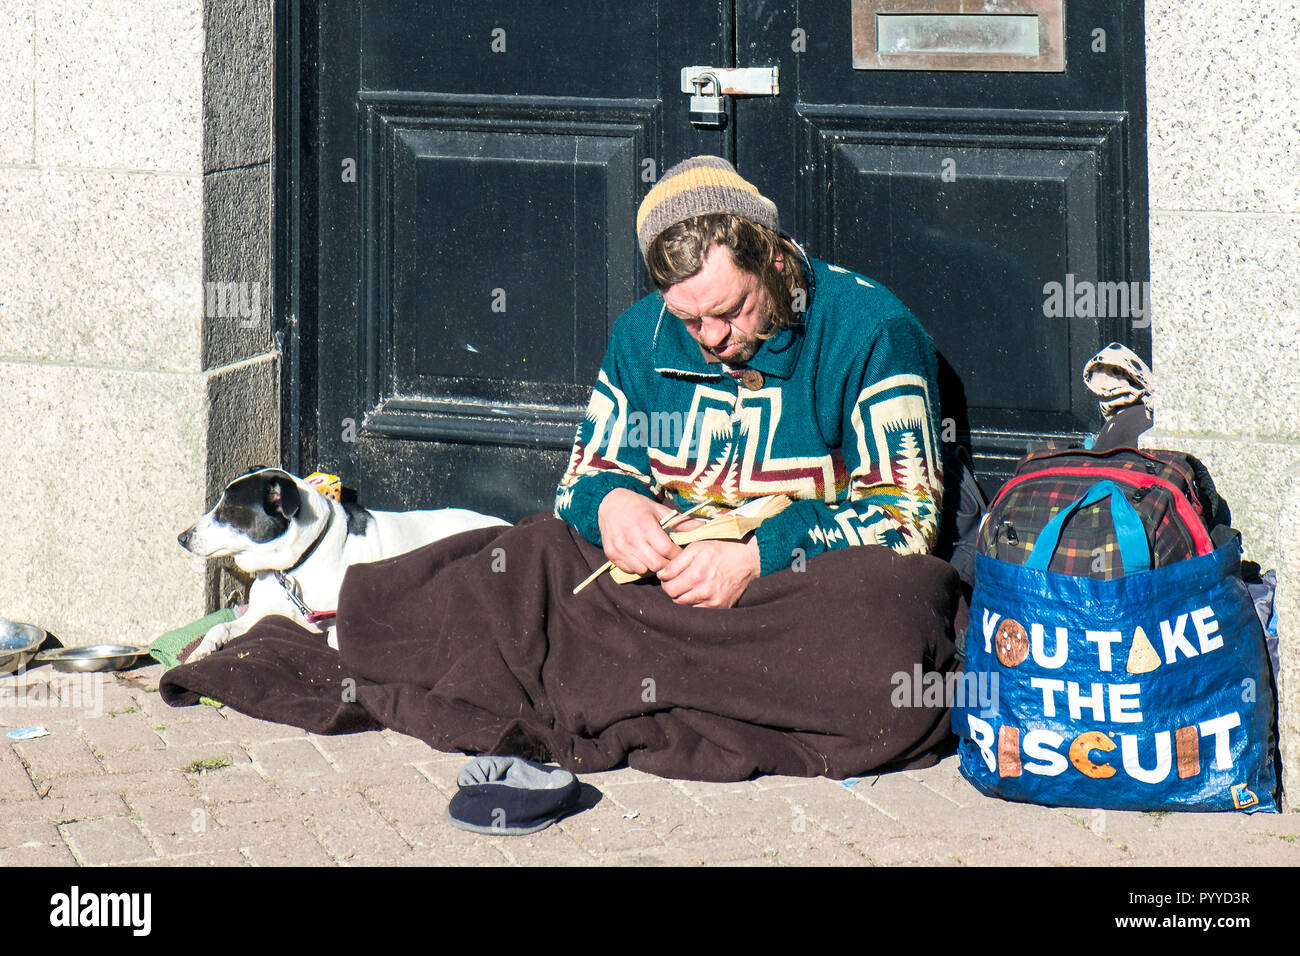 A homeless man and his dog sitting in a doorway. - Stock Image